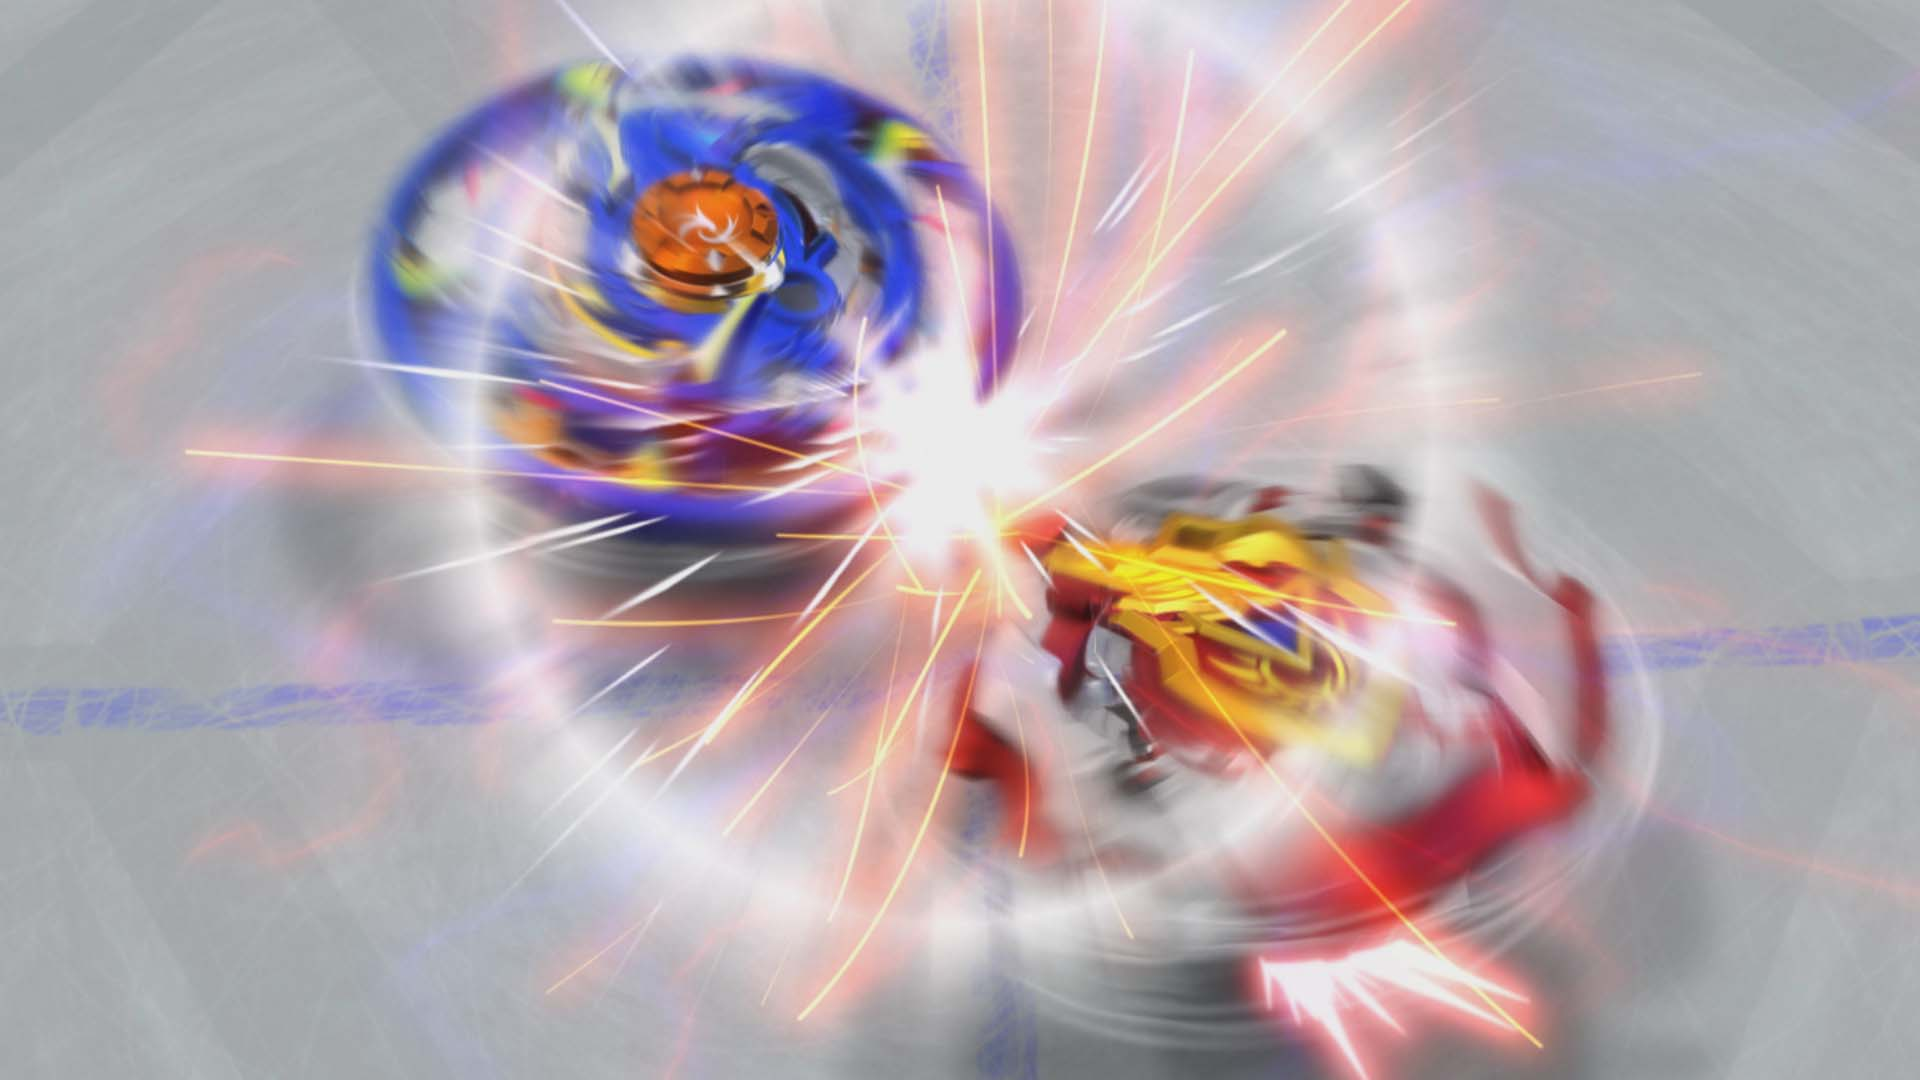 New episodes of Beyblade this summer!